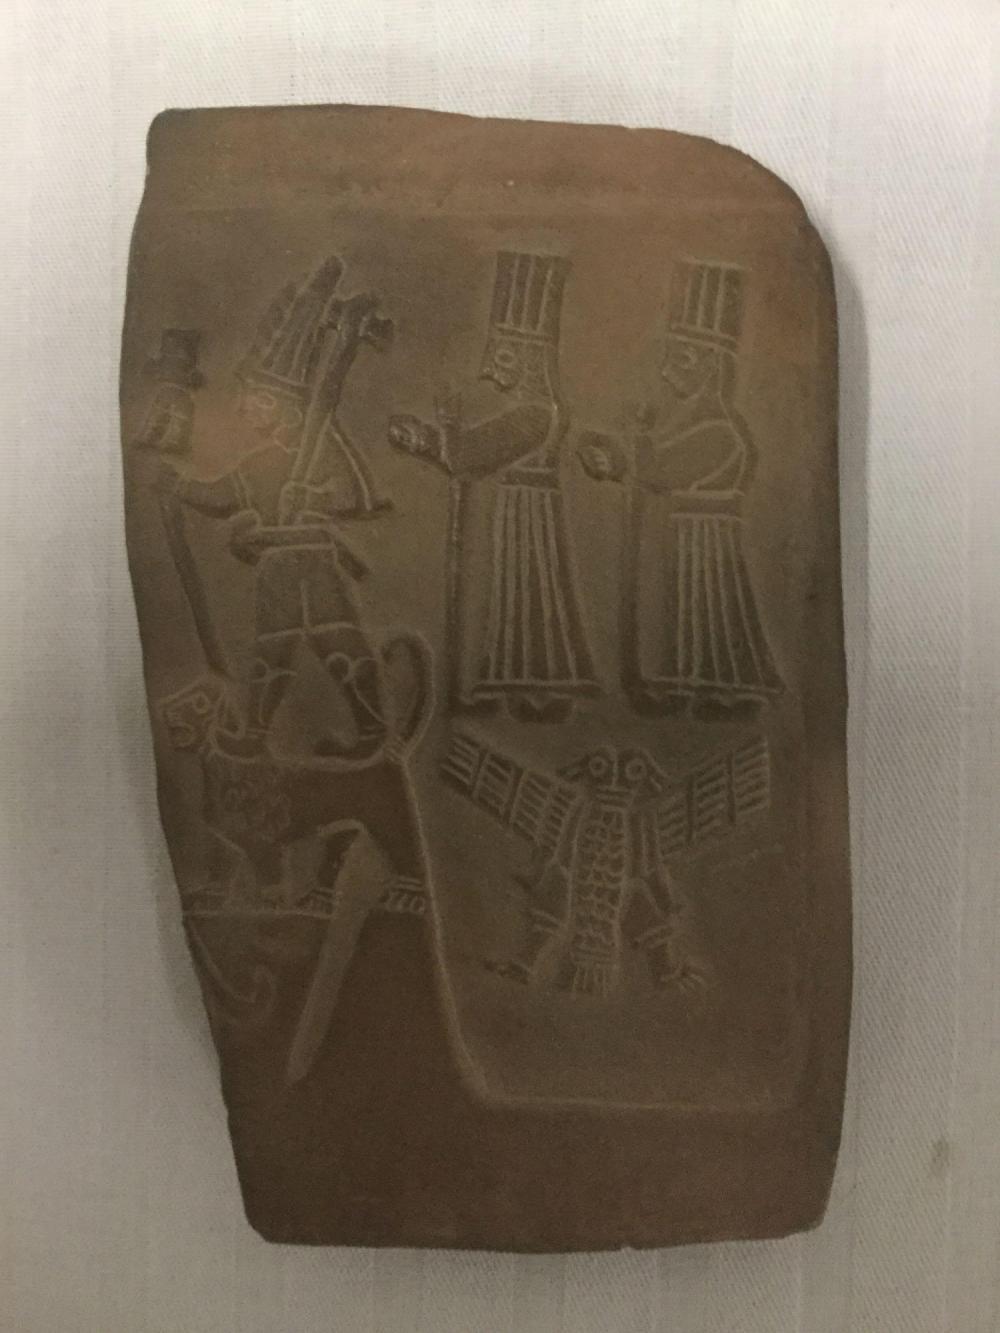 Lot 186: Contemporary carved relief tile - signed Ibrahim 1999